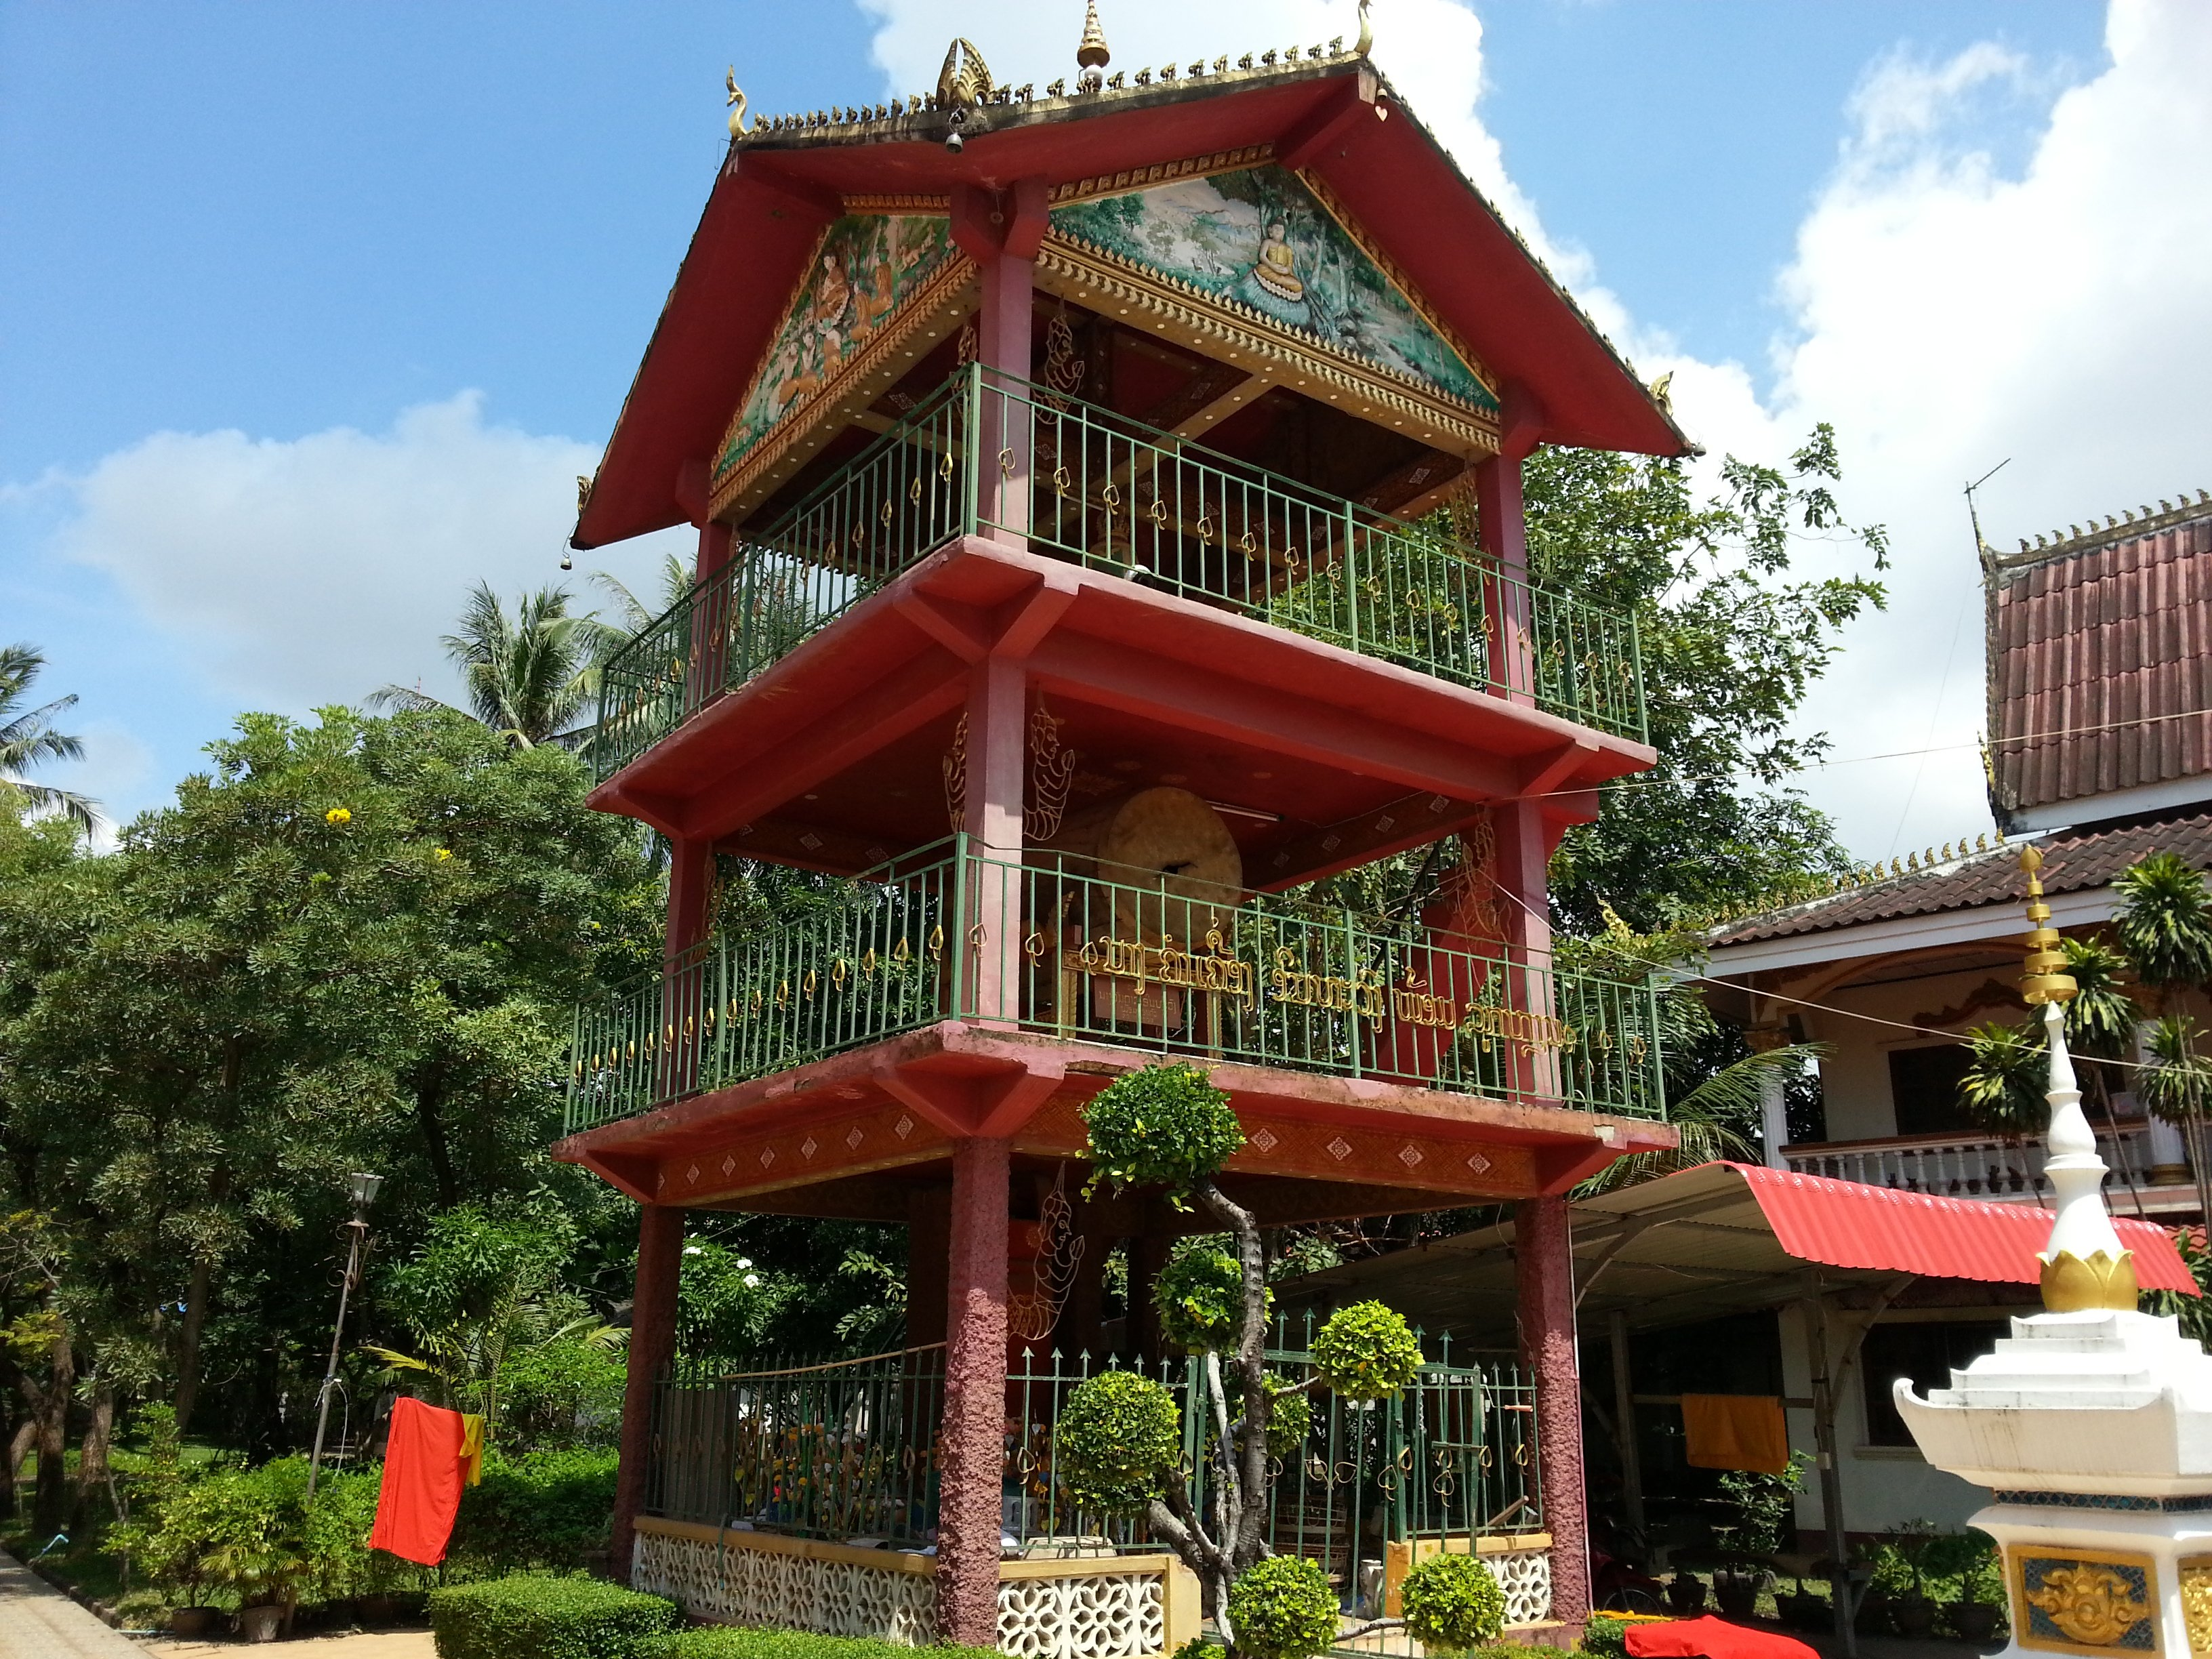 Three storey drum tower at Wat Chanthaboury